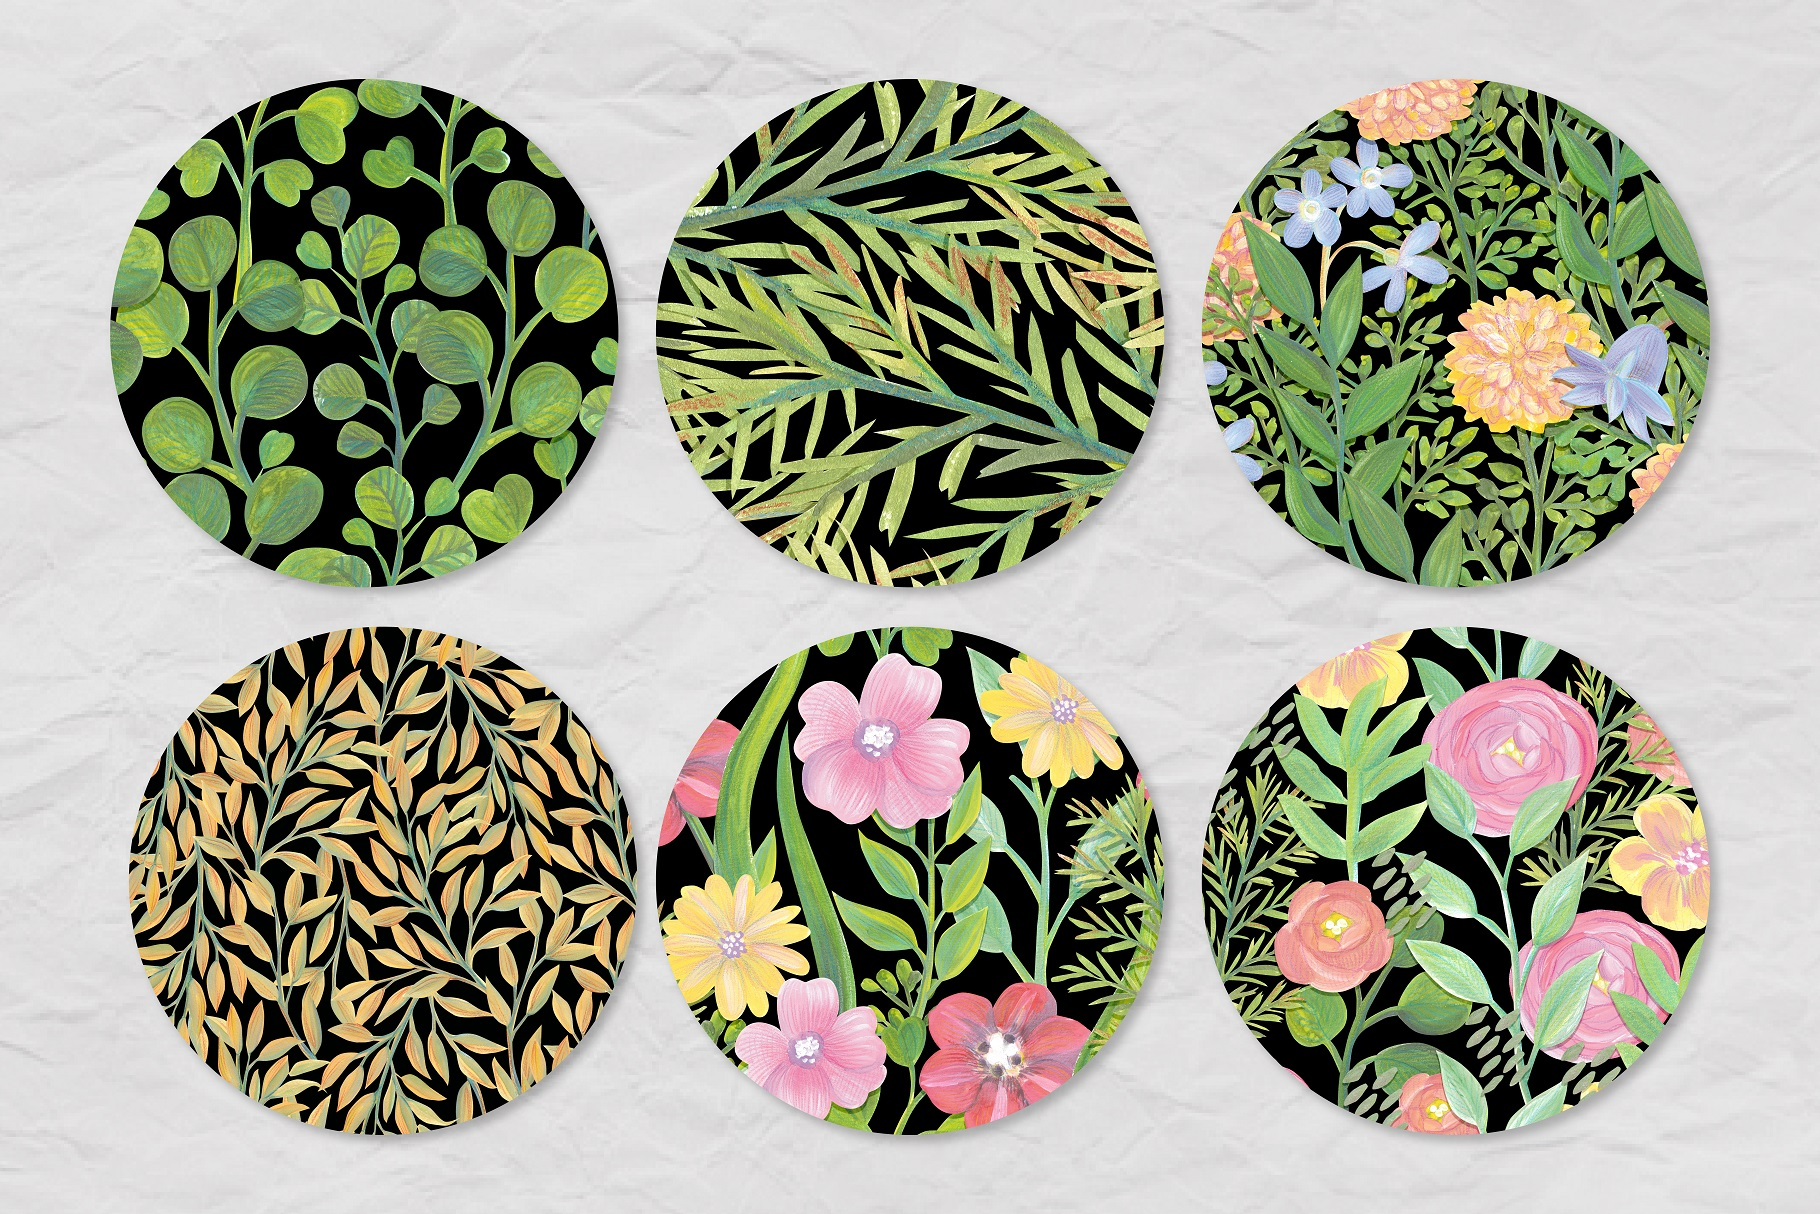 Floral Collage Creator example image 7